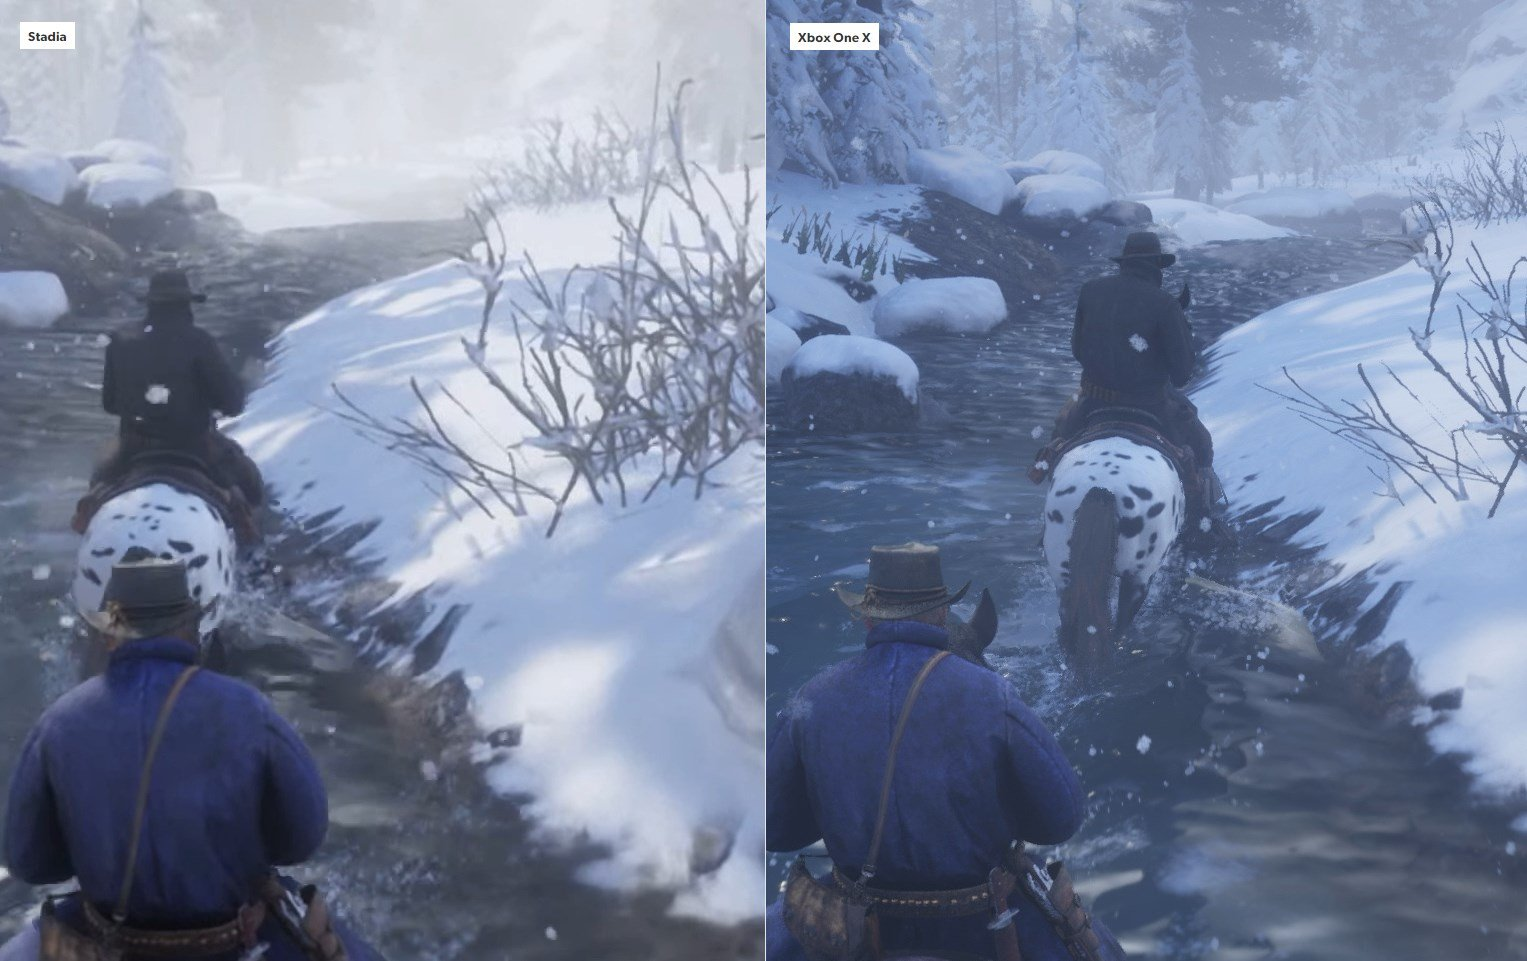 Google Stadia vs. Xbox One X Red Dead Redemption 2 - 3